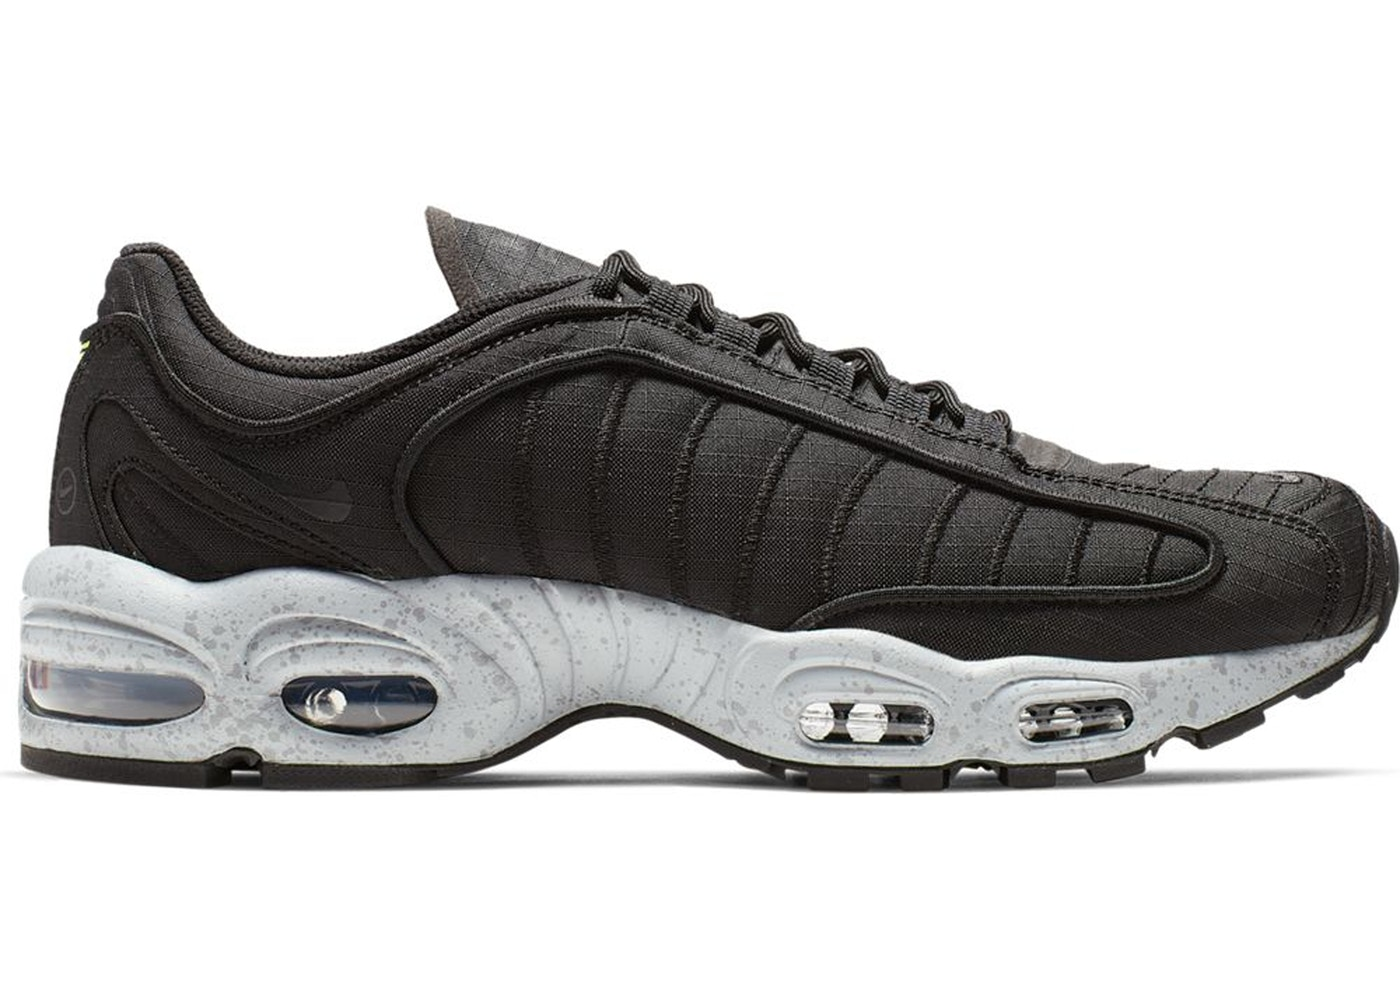 buy online d88fa 9ef56 Nike Air Max Shoes - Release Date